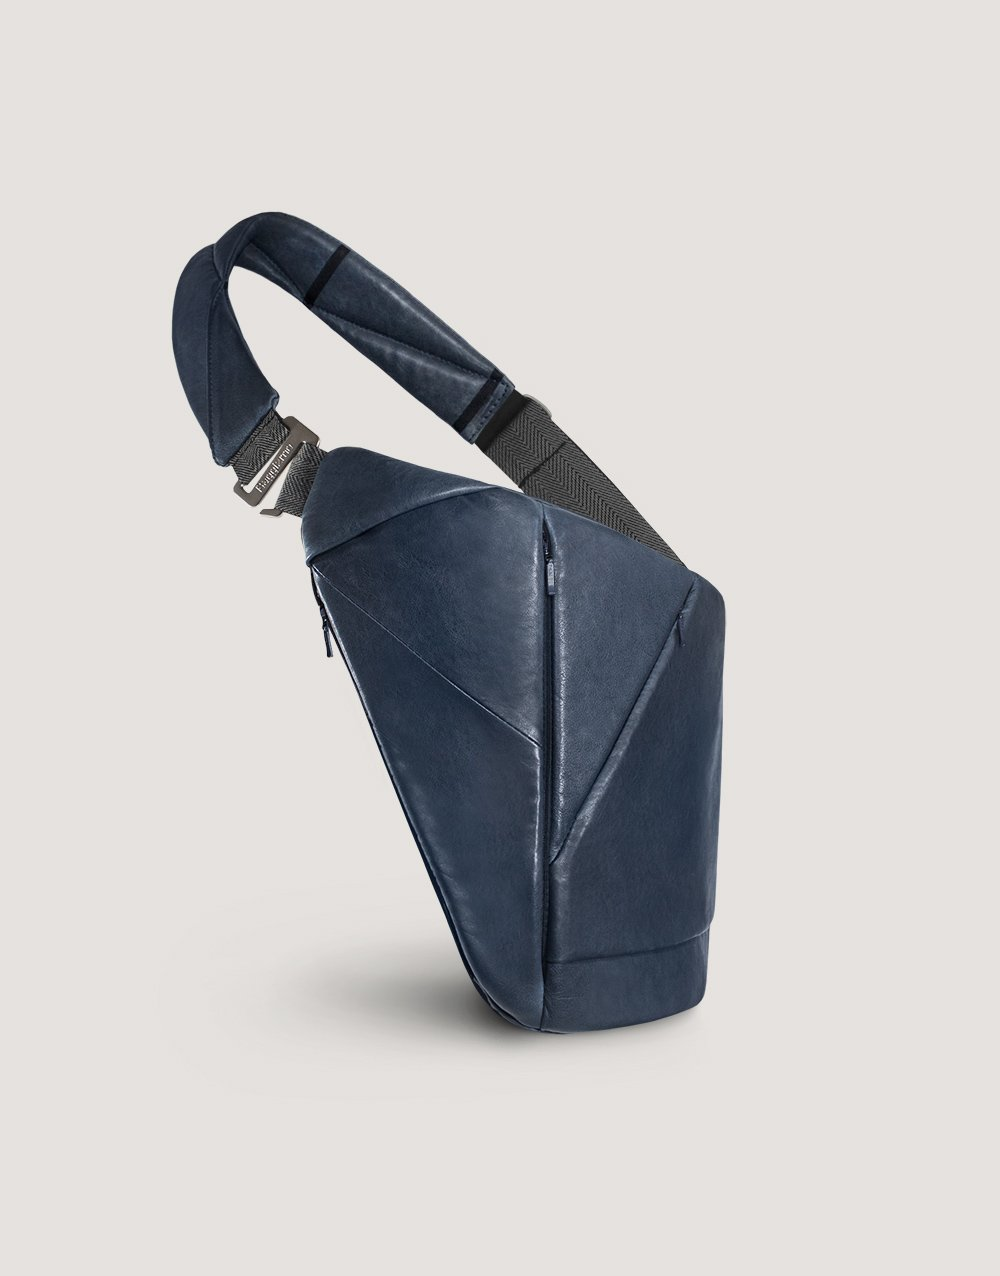 Blue leather crossbody bag with many pockets by Baggizmo